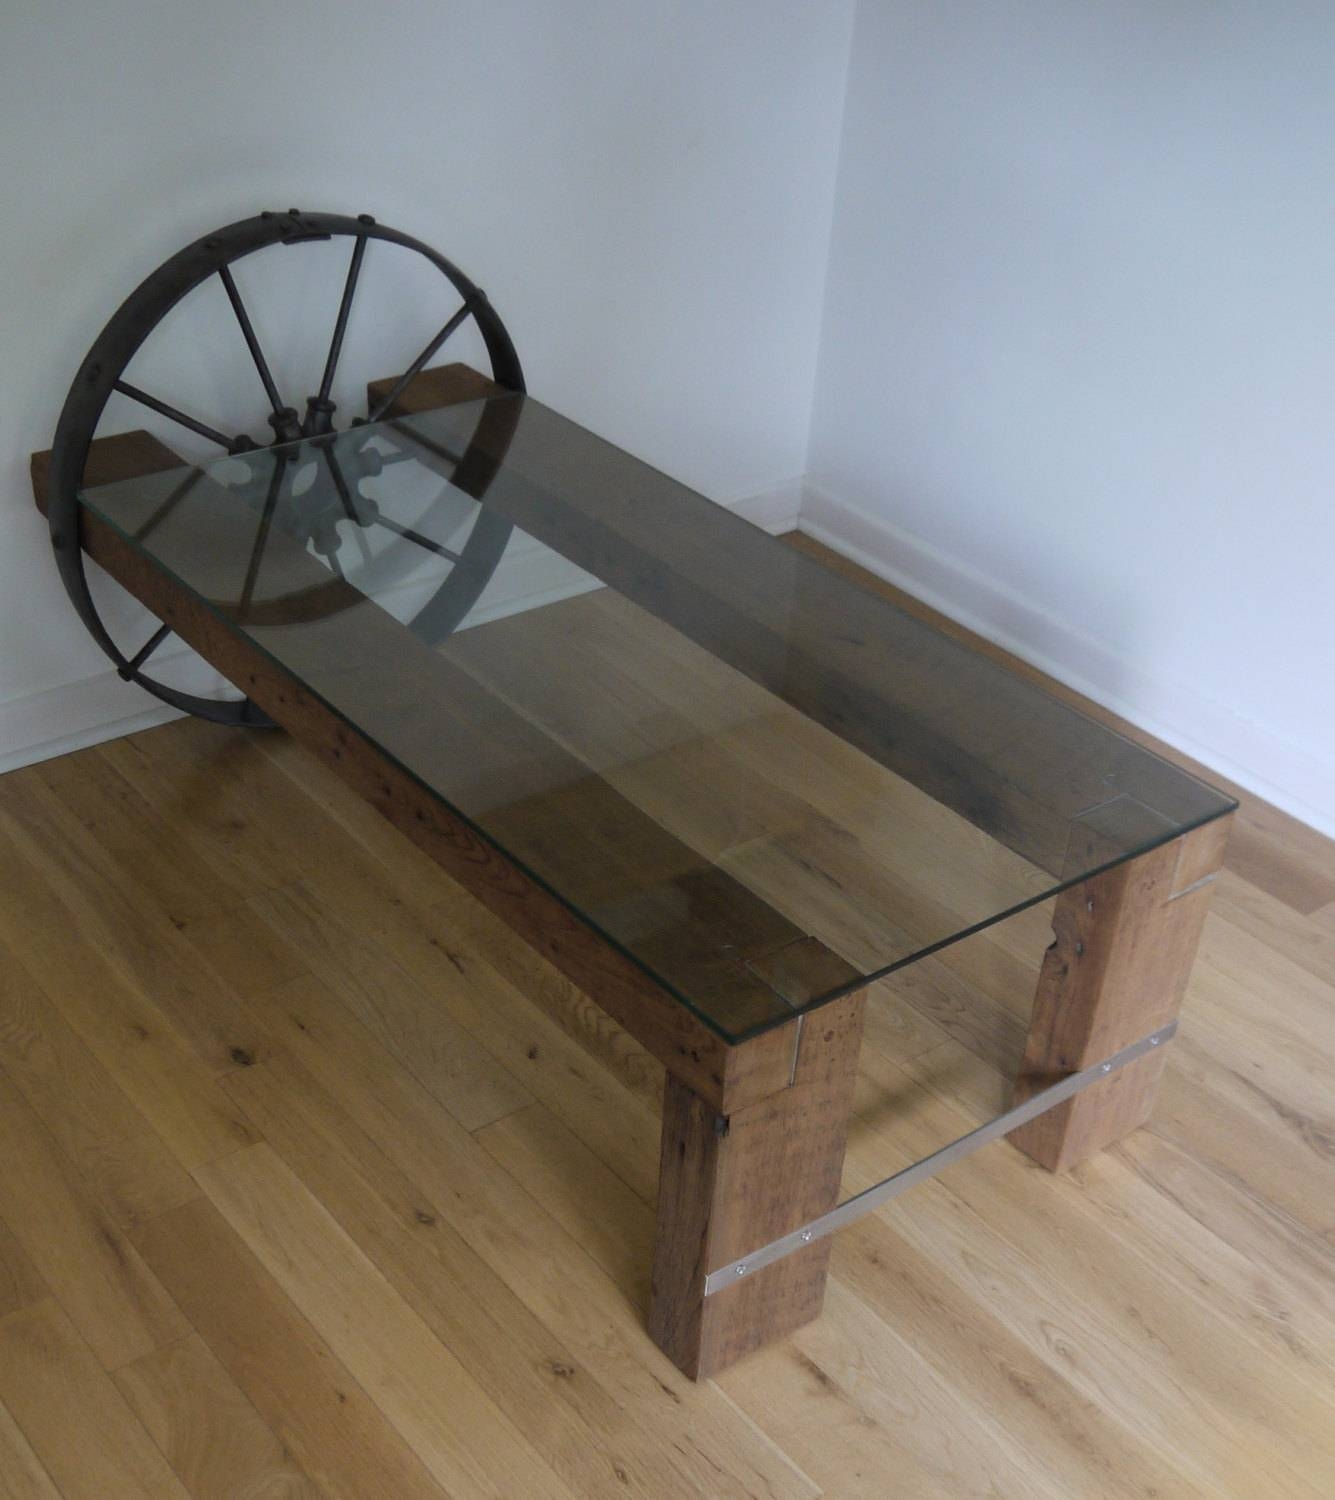 Reclaimed Wood And Glass Coffee Table. Metal Coffee Table. intended for Reclaimed Wood And Glass Coffee Tables (Image 20 of 30)